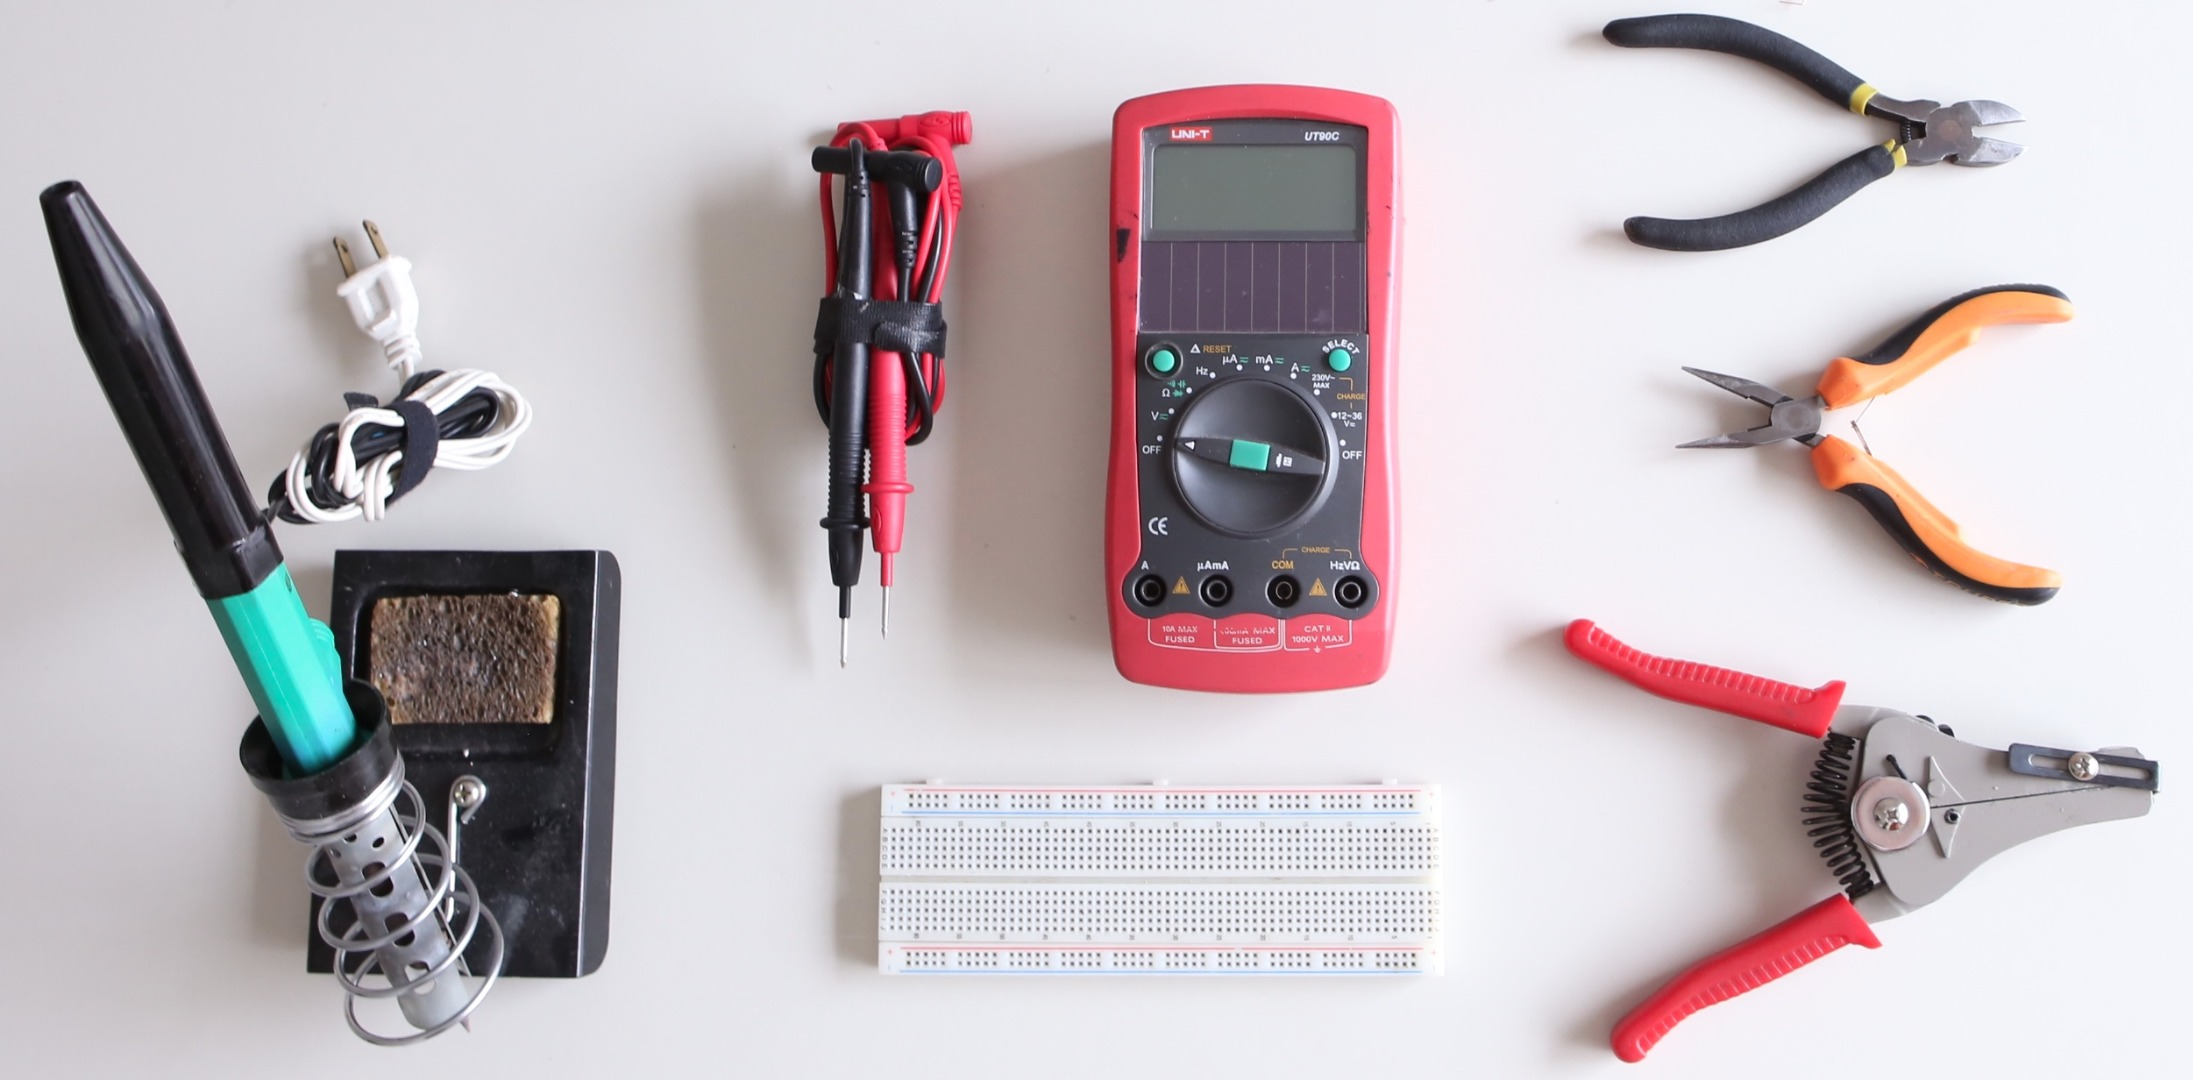 Picture of The Materials and Tools